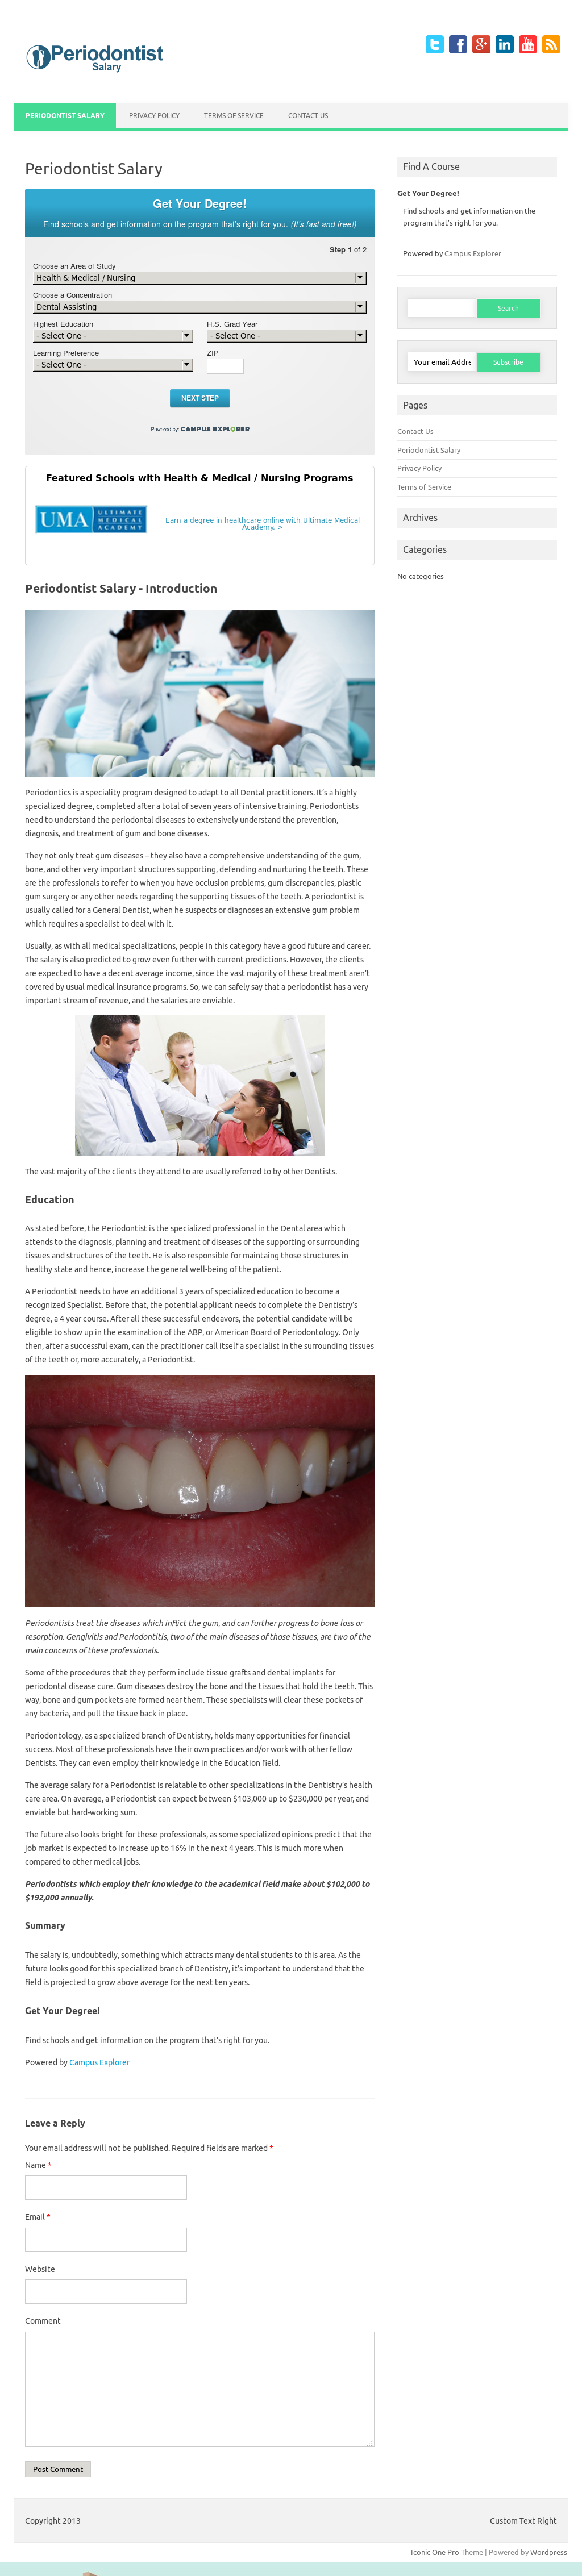 Periodontist Salary Competitors, Revenue and Employees